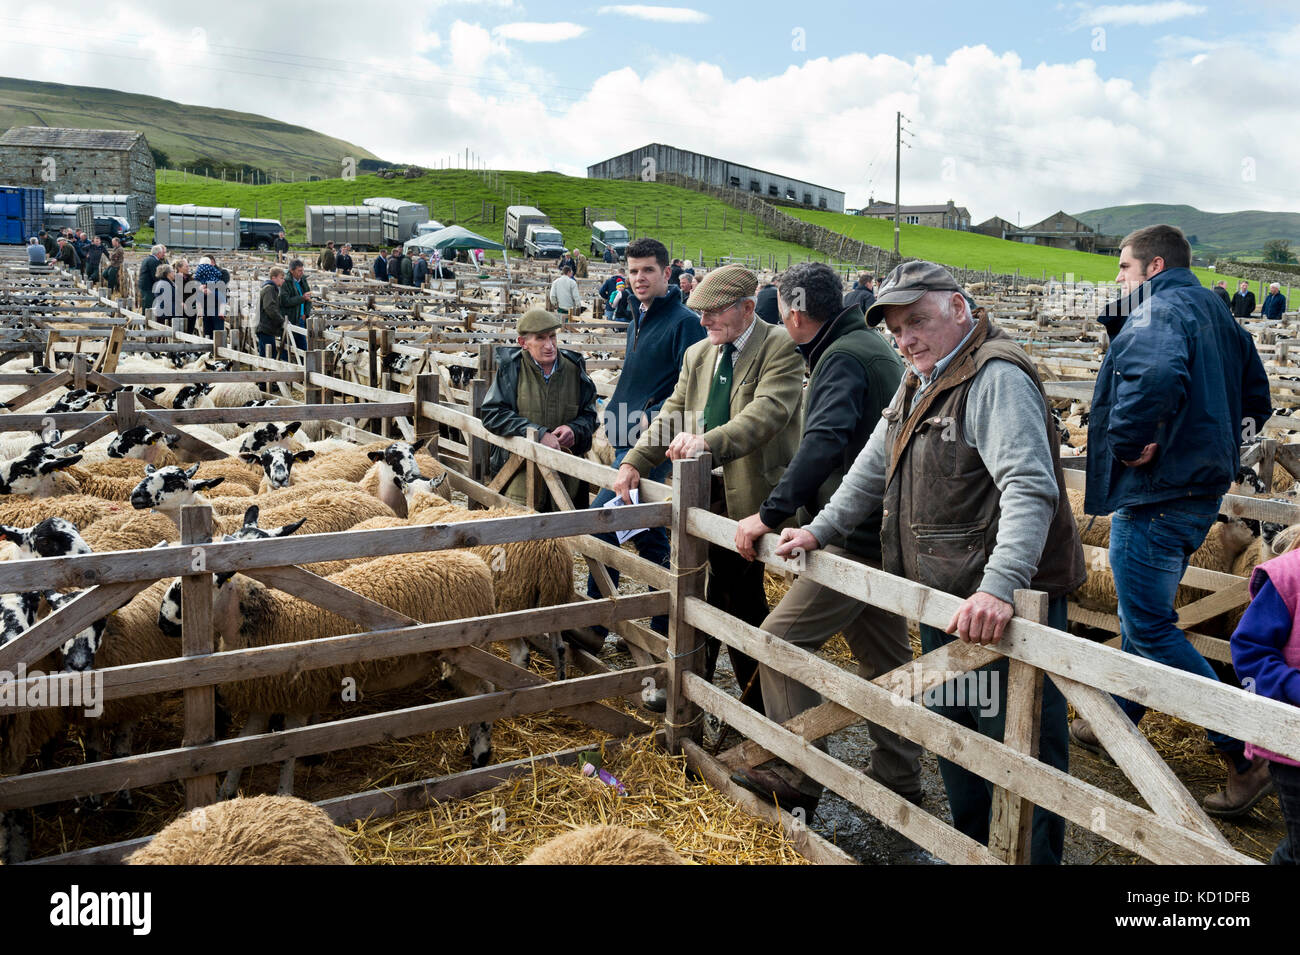 Major two day show and sale of mule gimmer lambs at Hawes Auction mart, North Yorkshire, UK - Stock Image